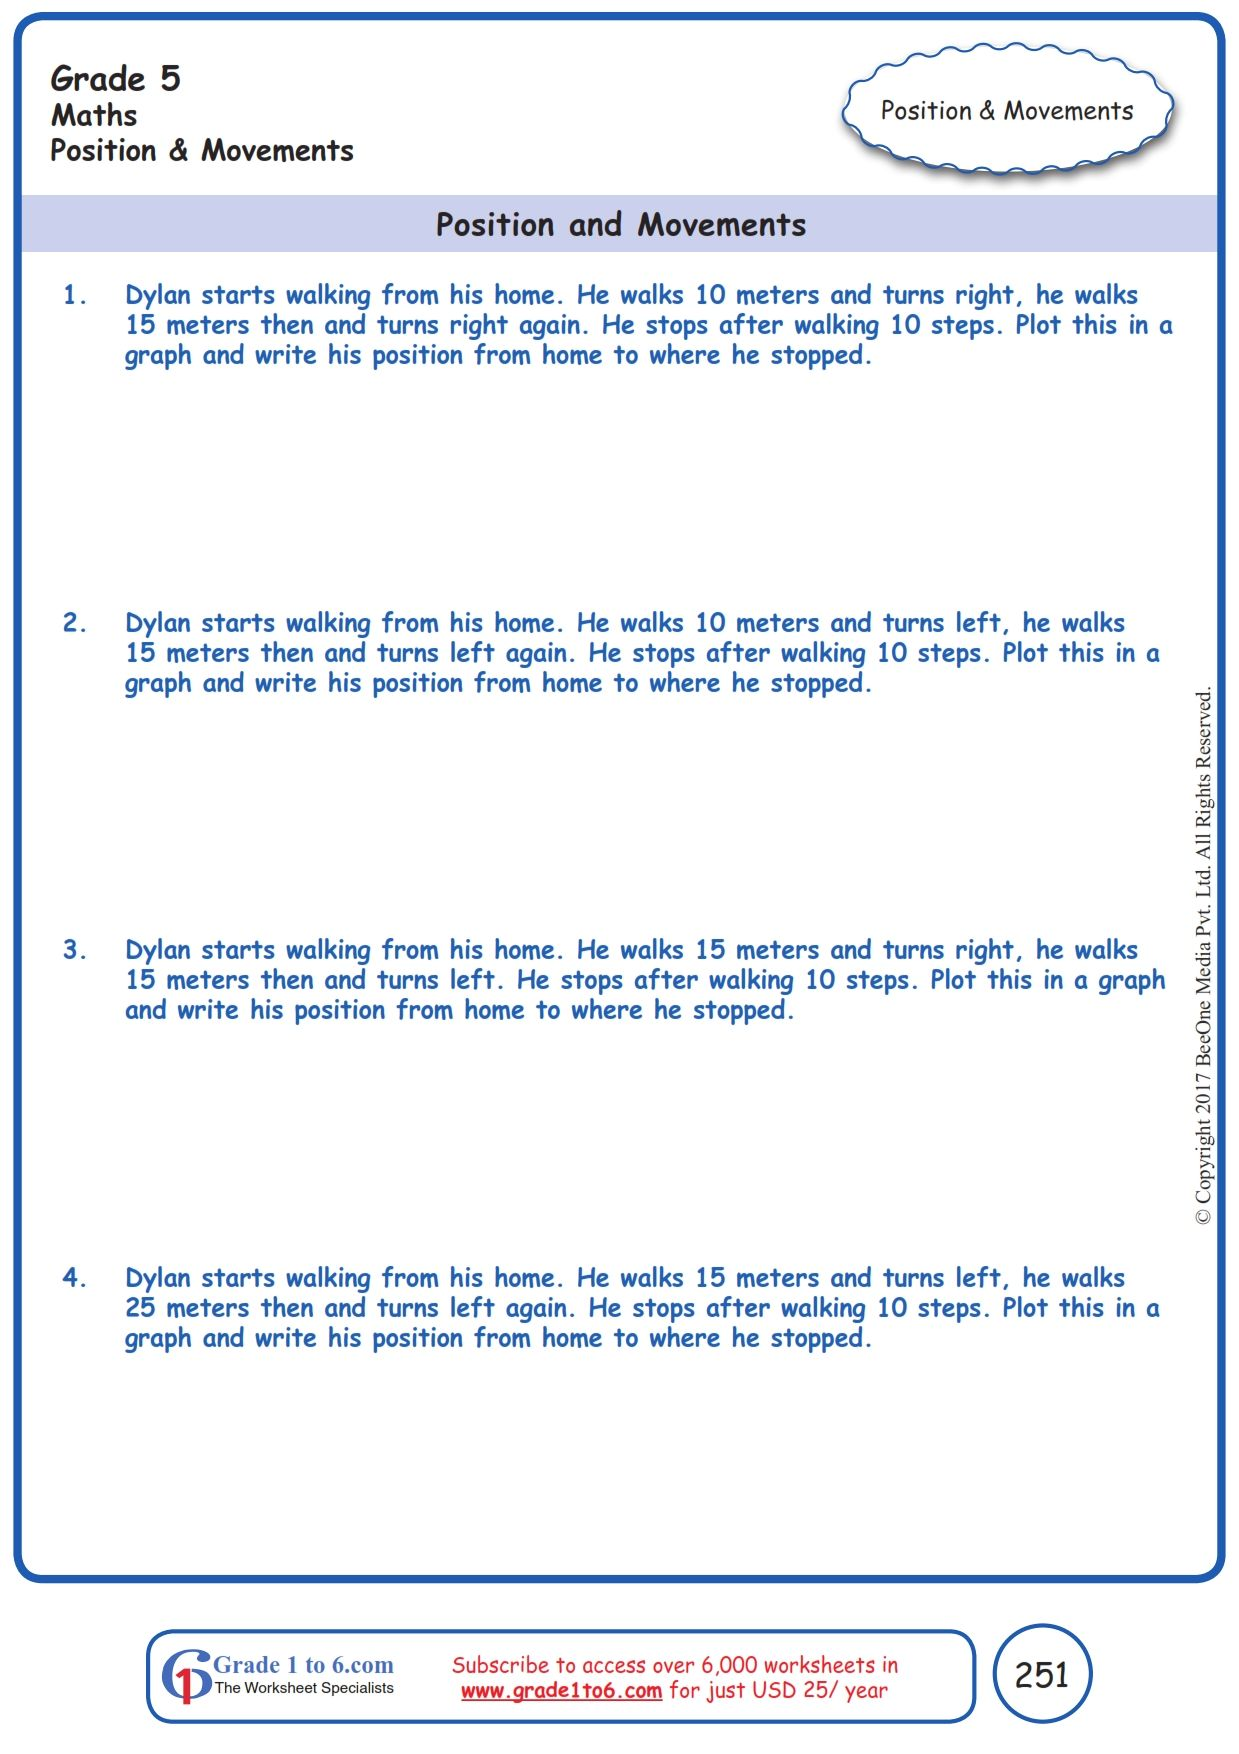 Worksheet Grade 5 Math Position And Movements In 2021 Free Math Worksheets Grade 5 Math Worksheets 5th Grade Math Addition word problems for grade cbse